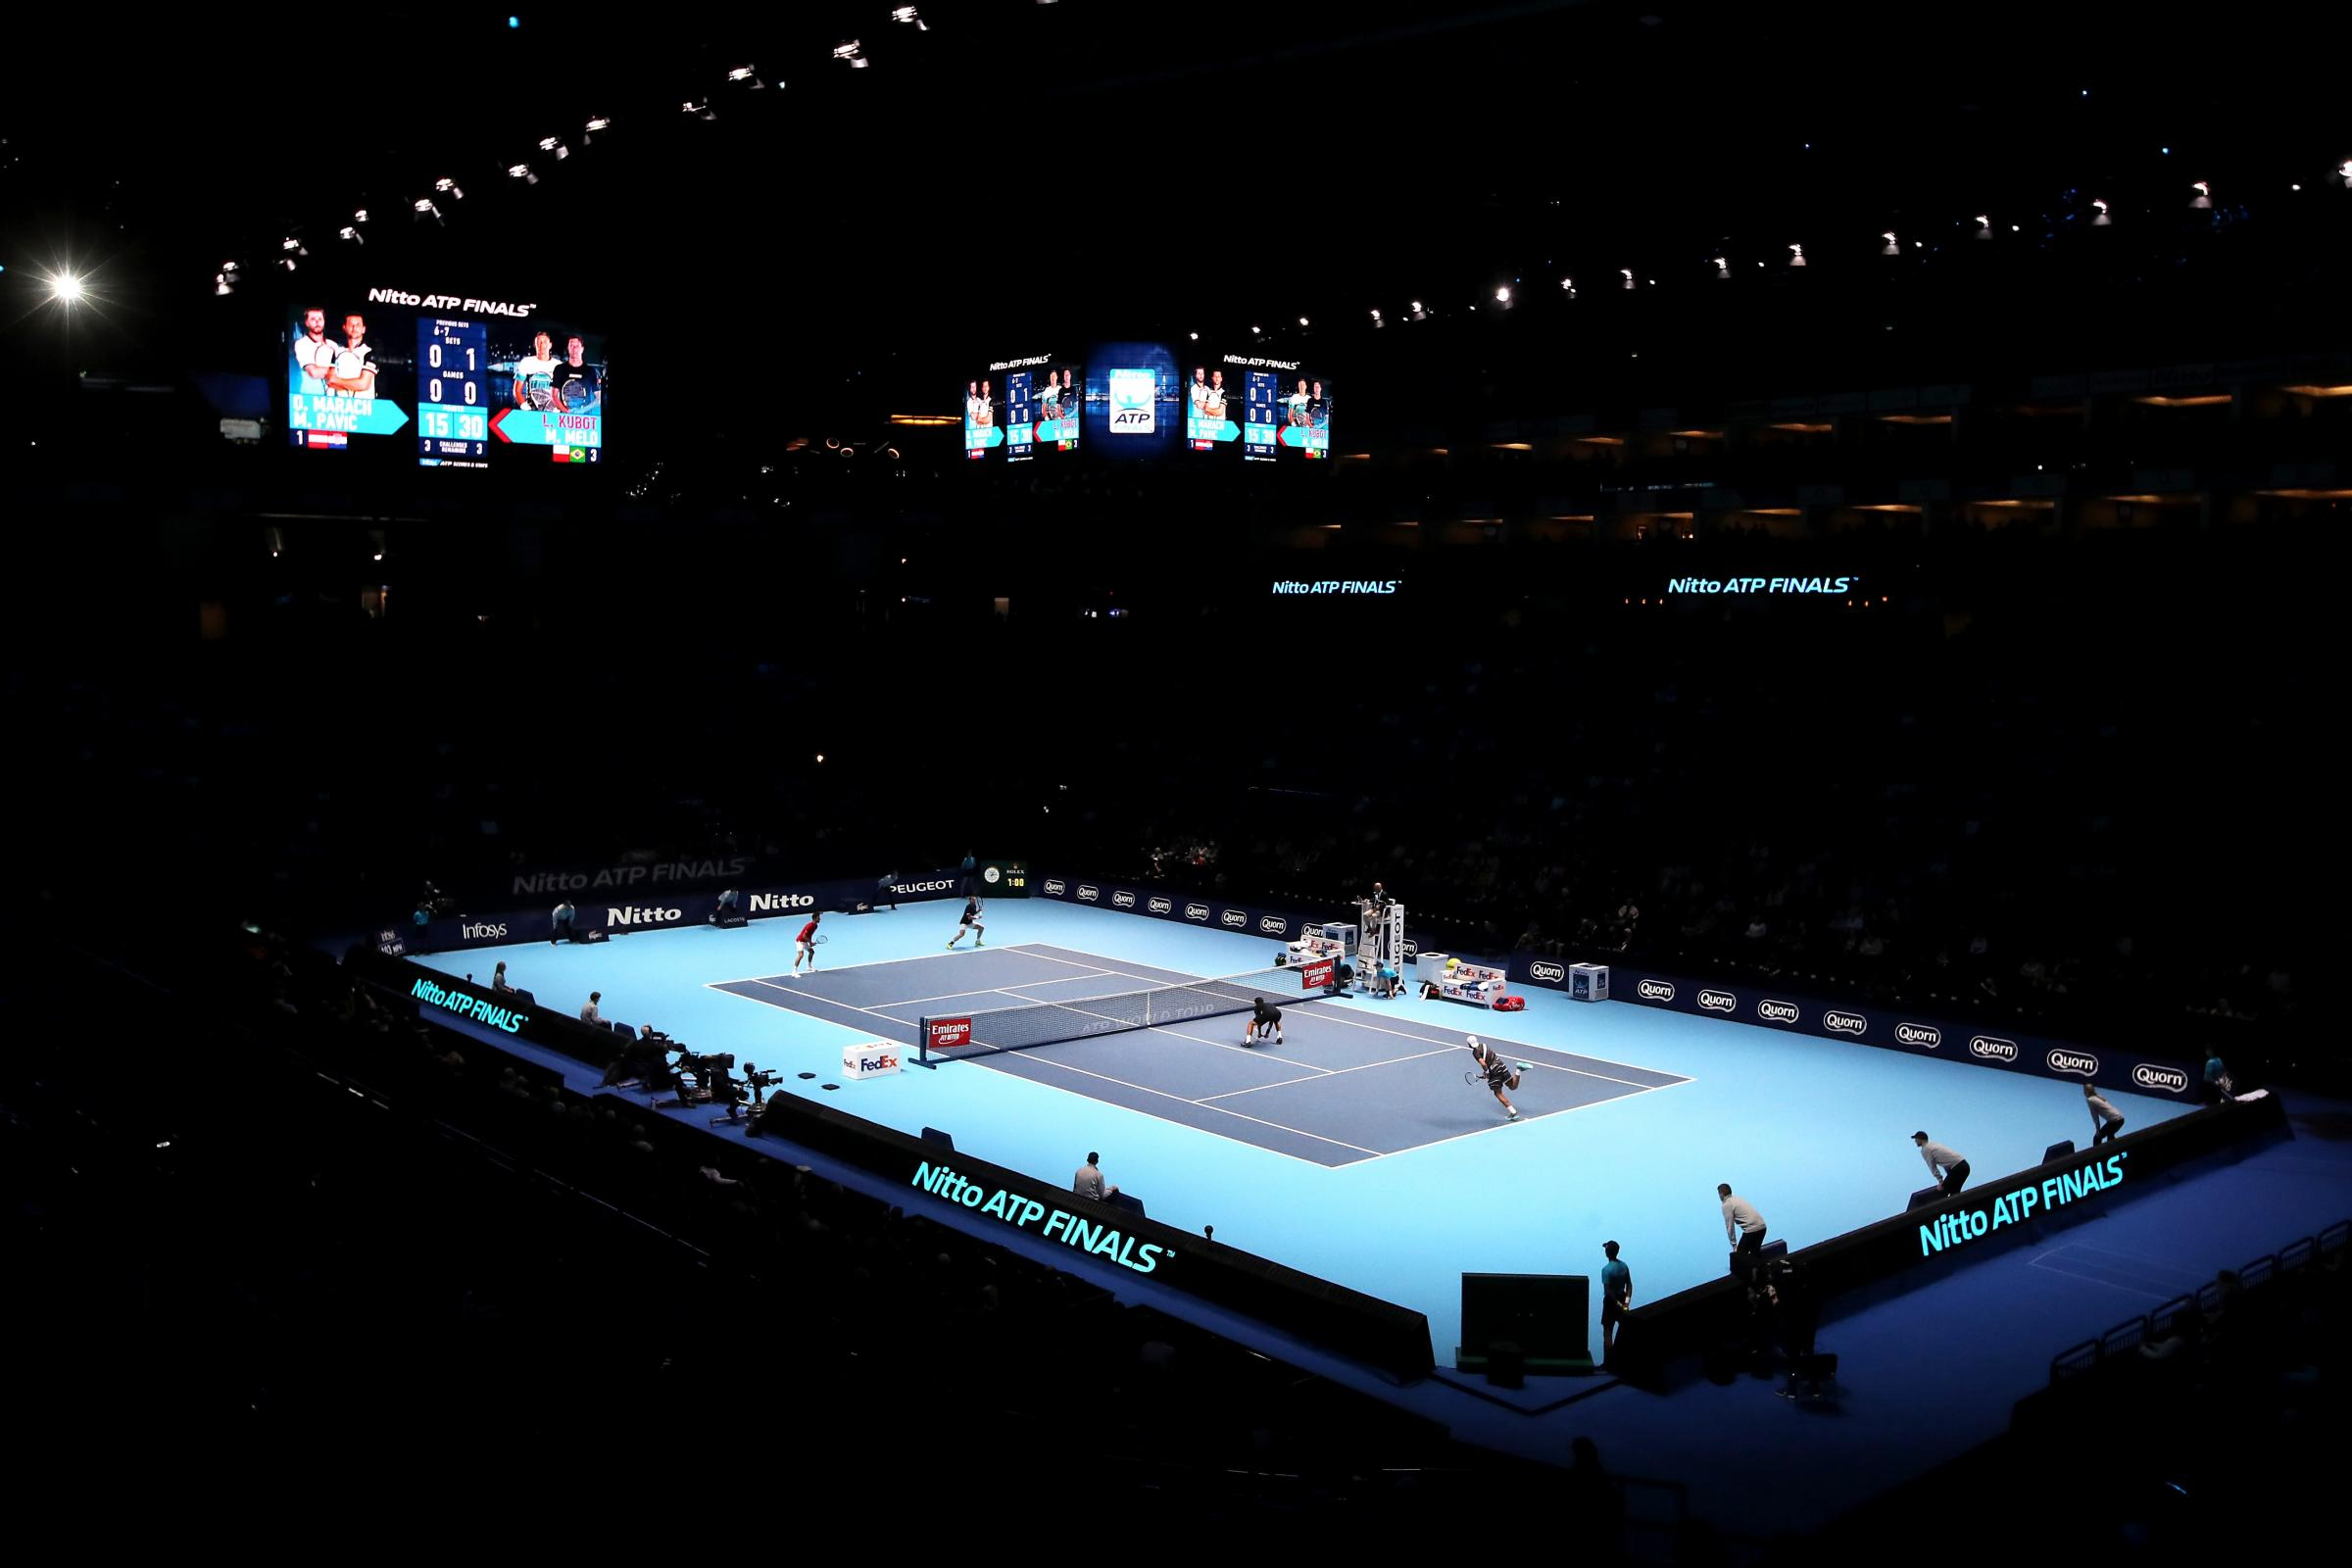 London's 02 Arena has hosted the ATP Finals since 2009